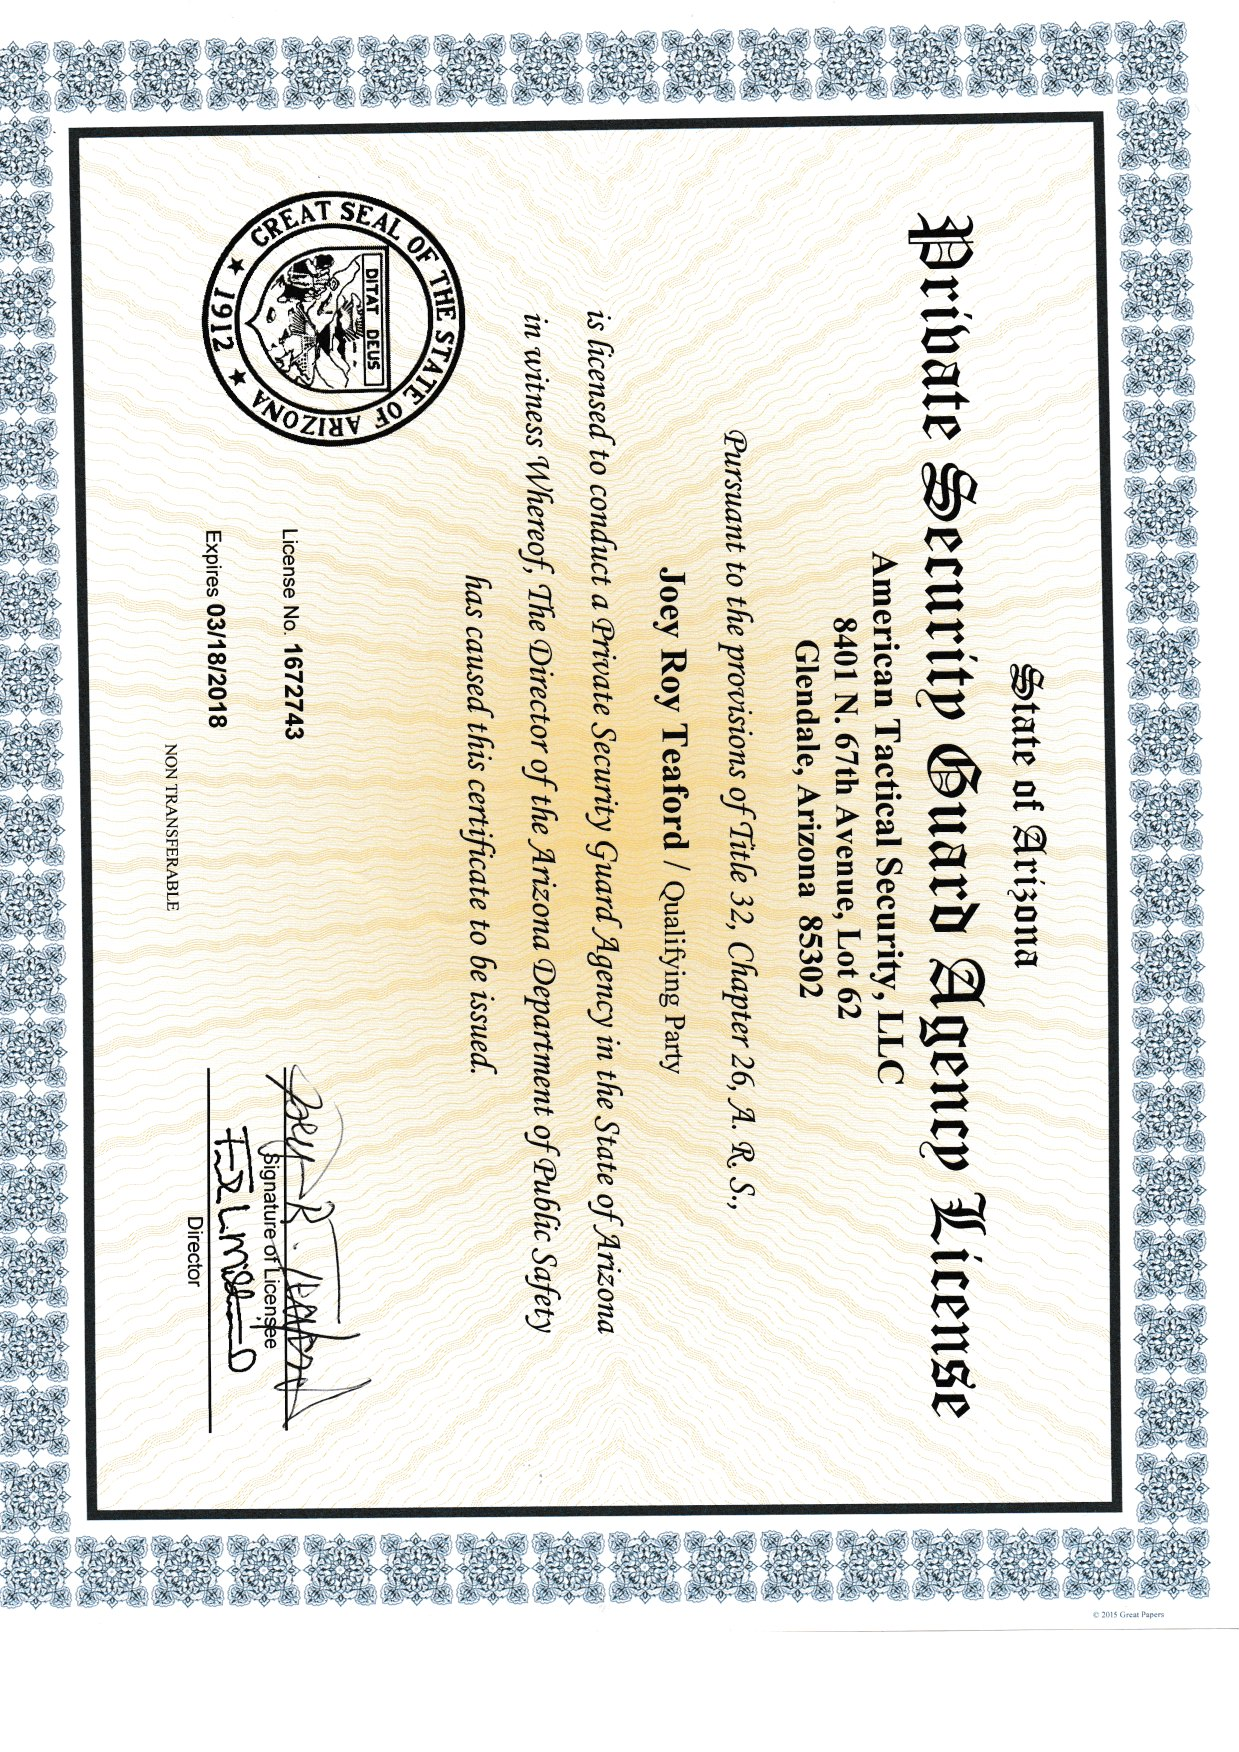 American tactical security llc licenses insurance bonding our certifications not provided request our insurance coverage 1betcityfo Images